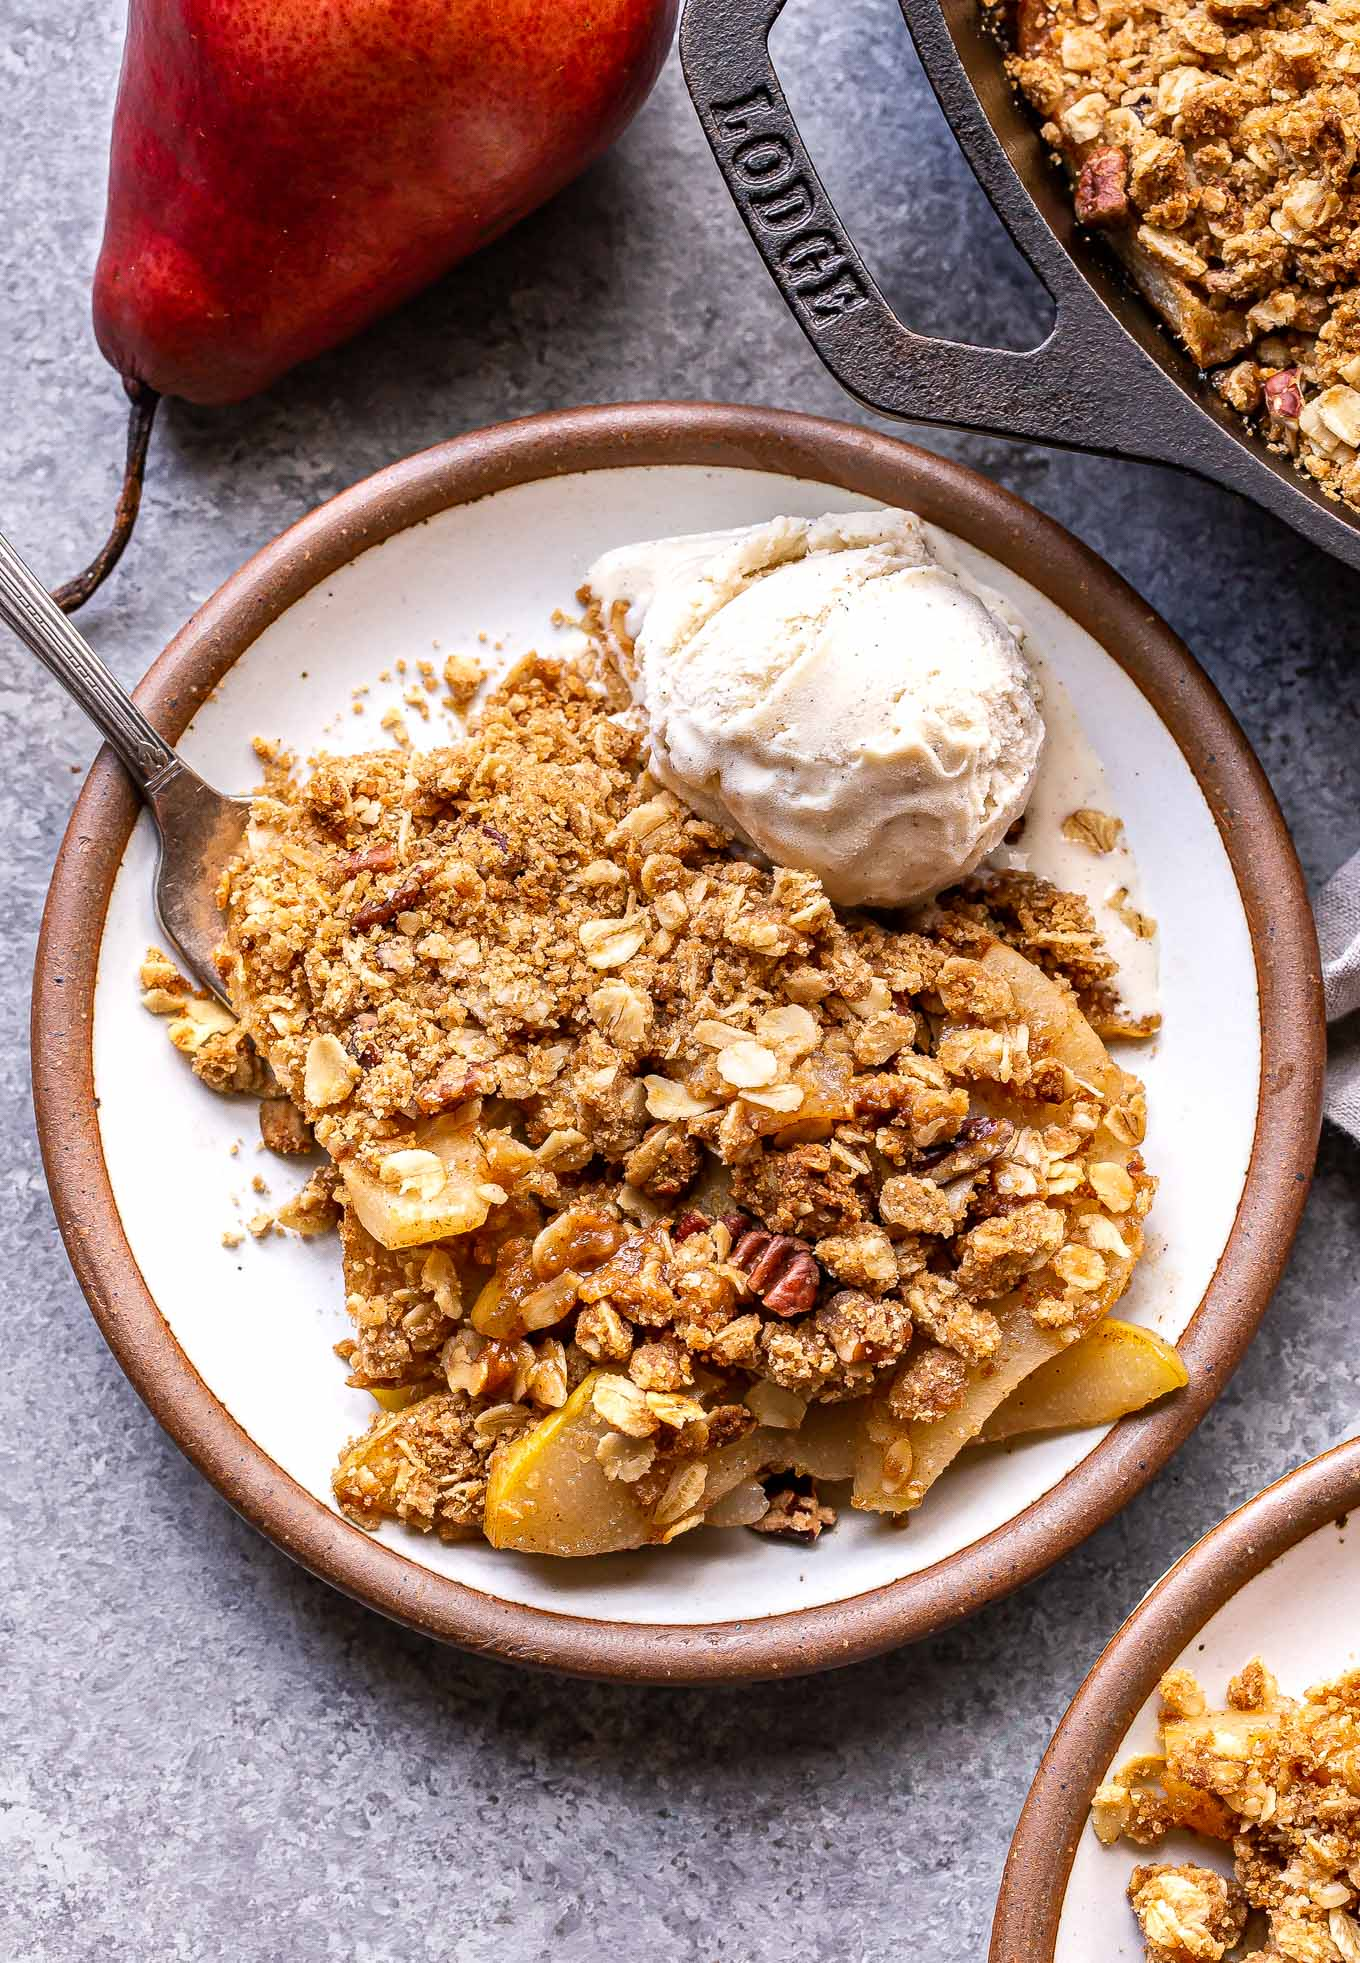 Pear Crisp on a white plate with a fork and a scoop of vanilla ice cream. A red pear is behind the plate.